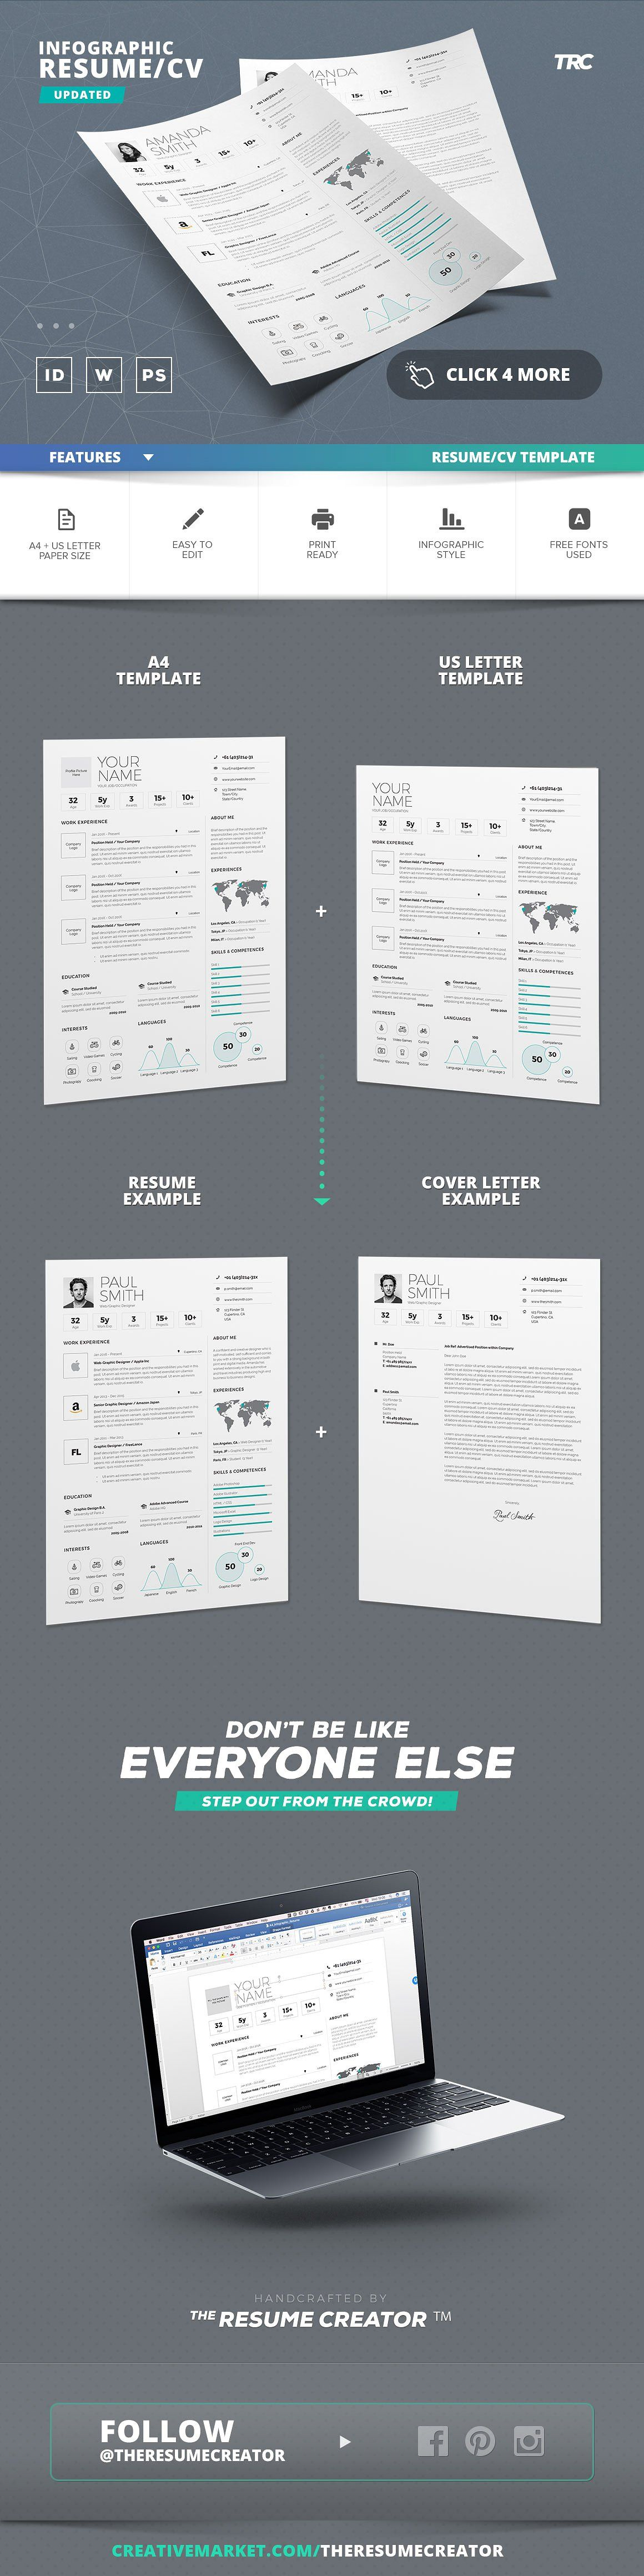 Infographic ResumeCv Template Vol6 by TheResumeCreator on